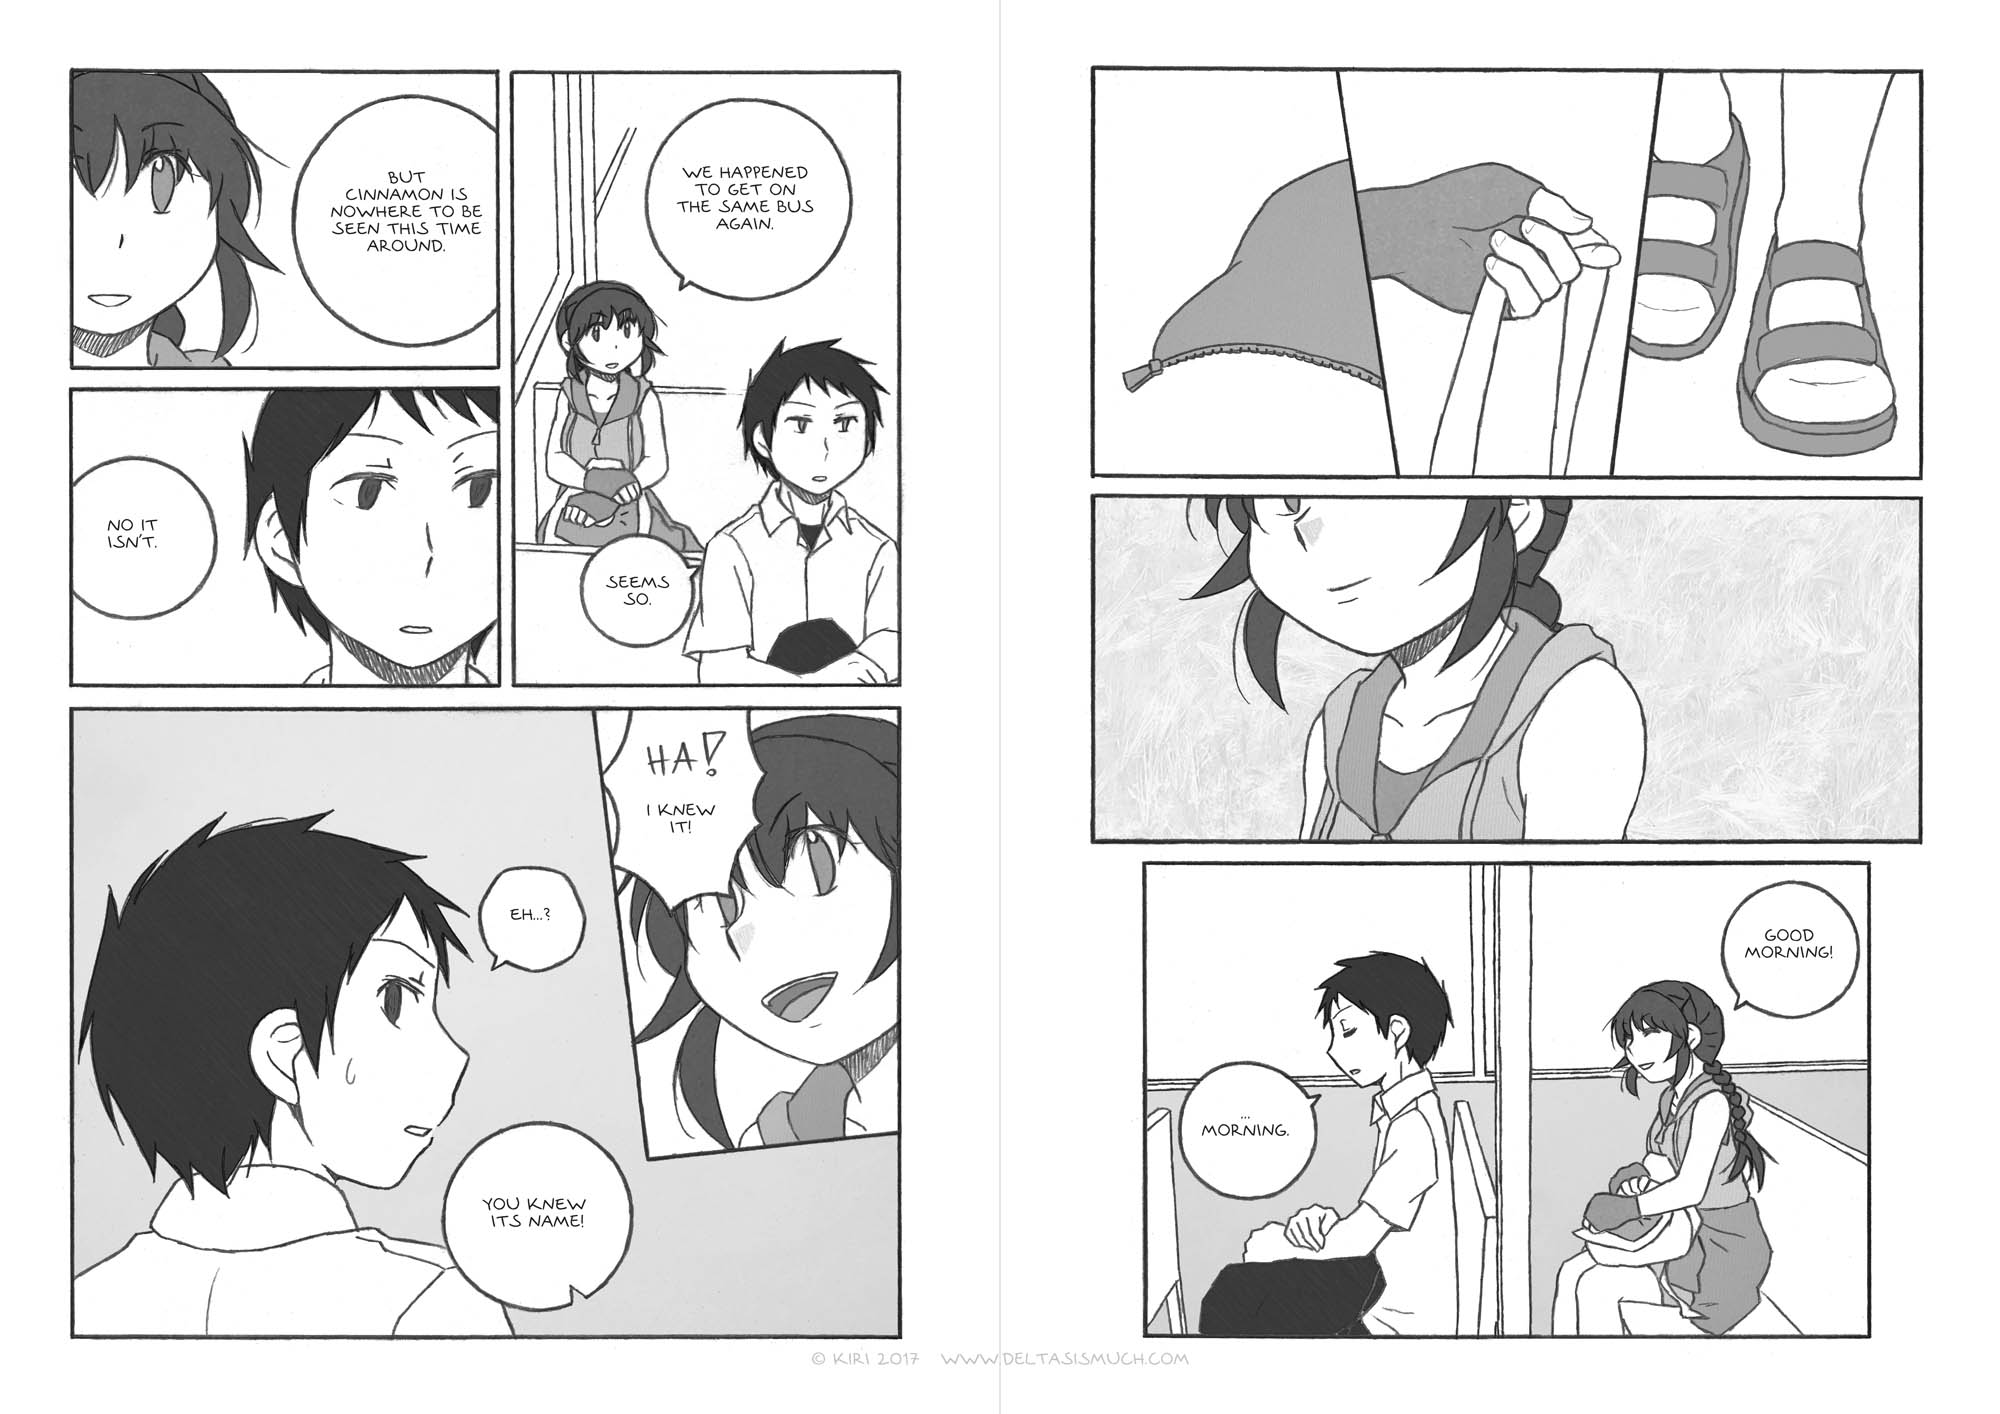 Chapter 4, pages 3 and 4